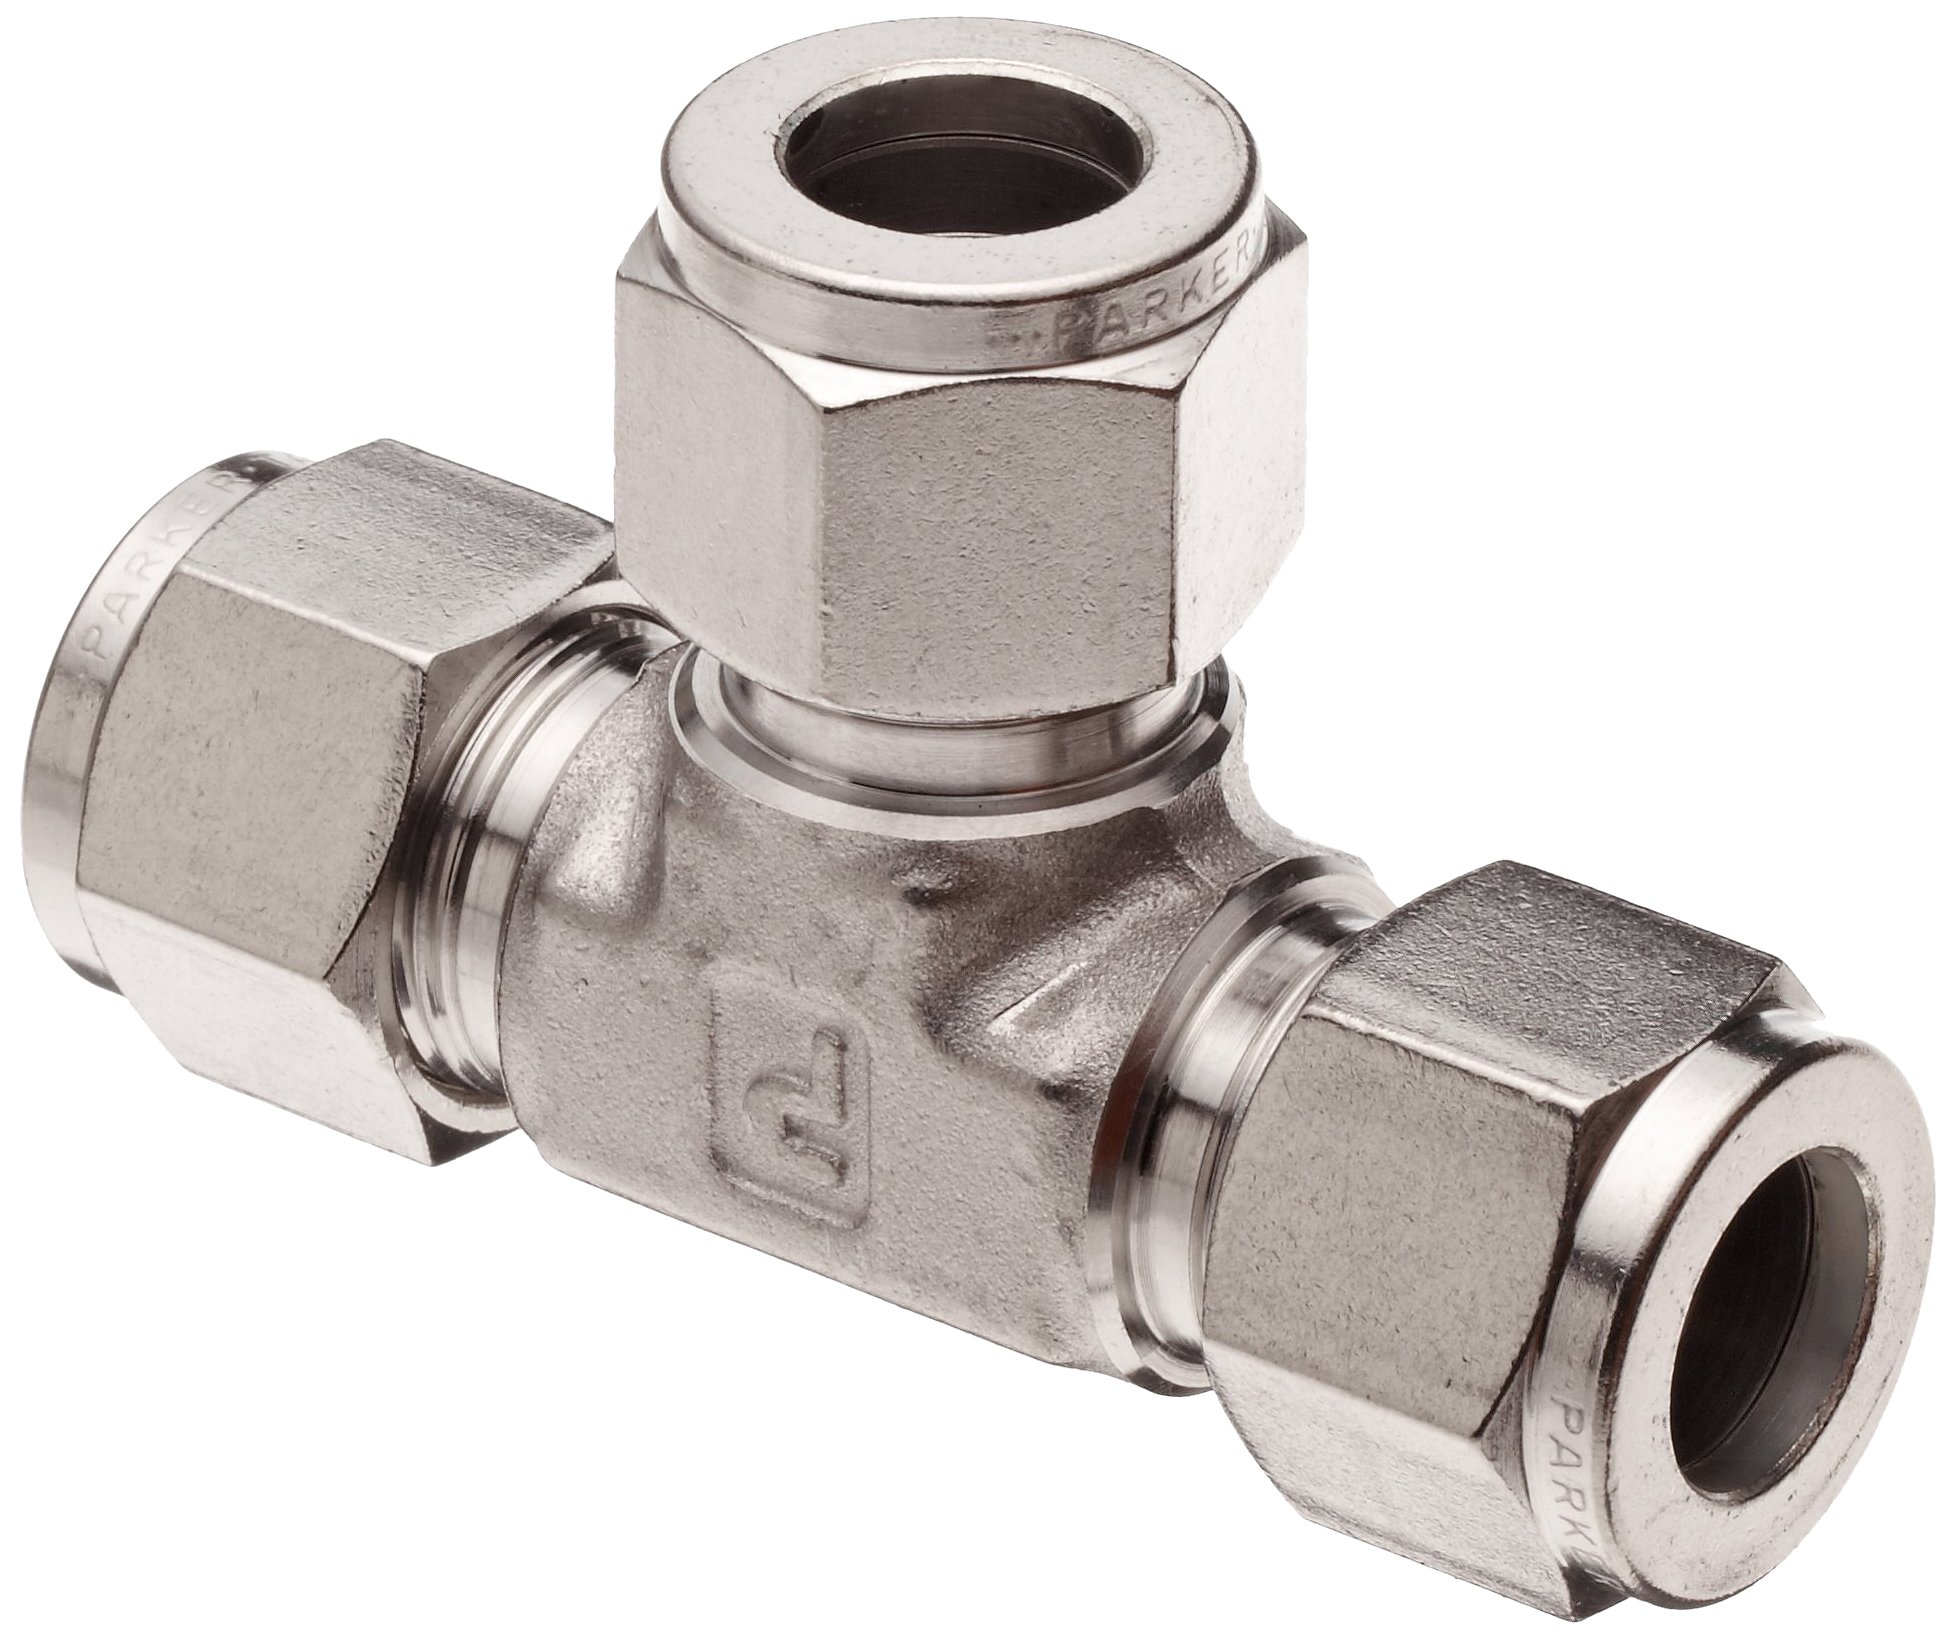 1//2 Tube OD Pushlok Adapter Parker A-Lok 8P2TU8-316 316 Stainless Steel Compression Tube Fitting